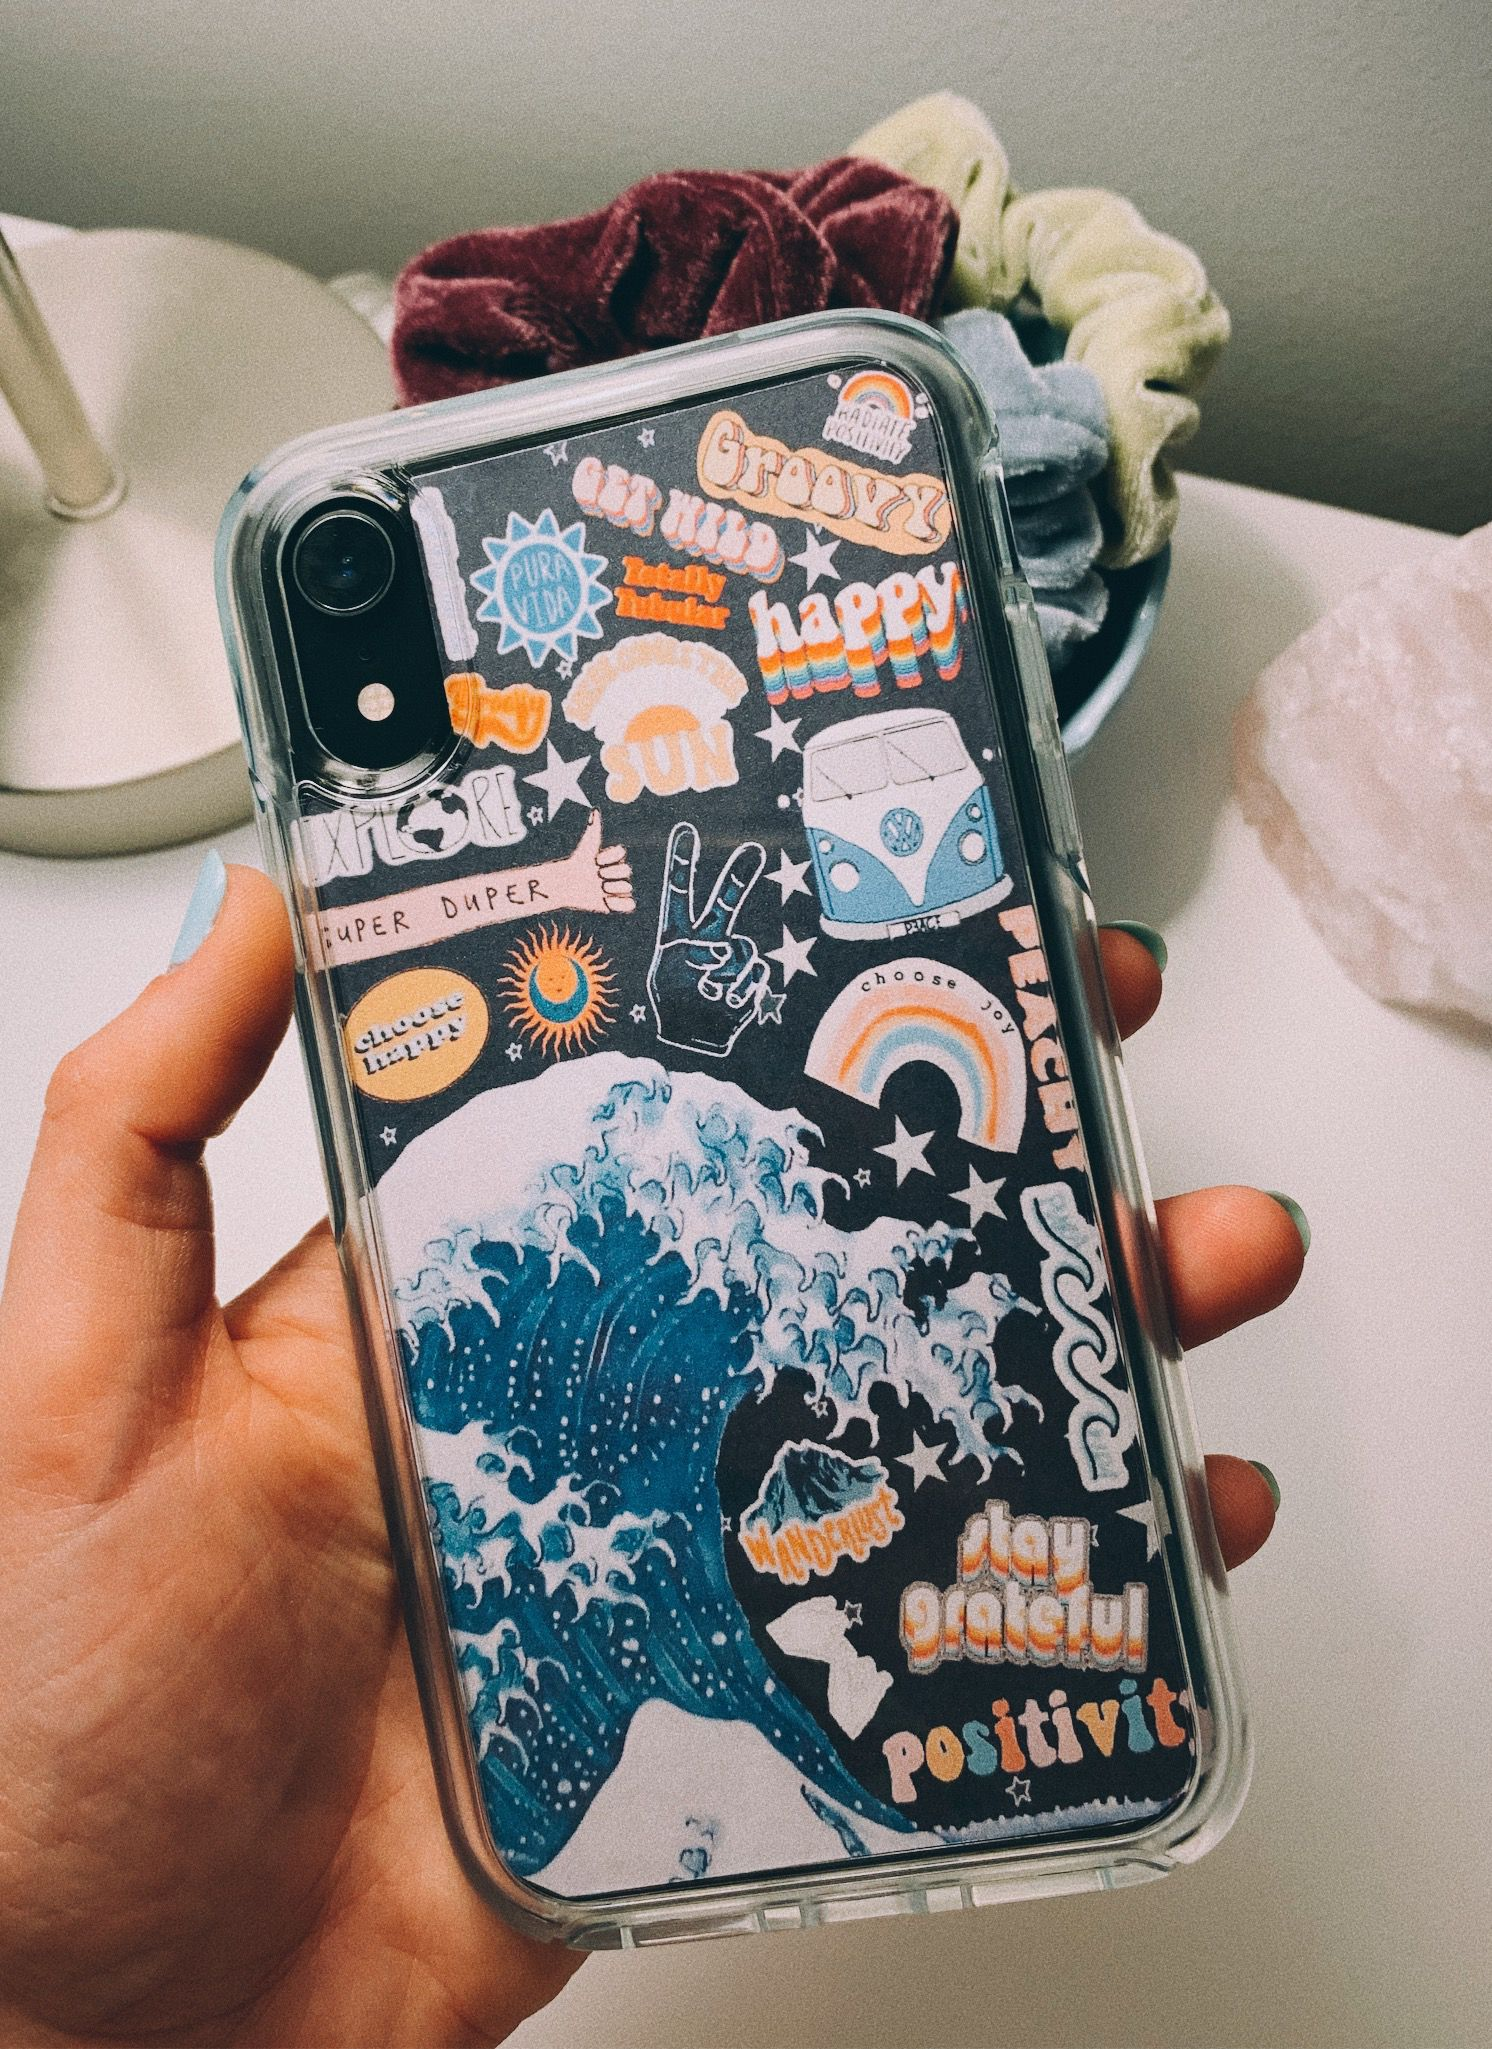 Pin by ☺︎ hannah grace ☺︎ on ART BY ME | Tumblr phone case ...